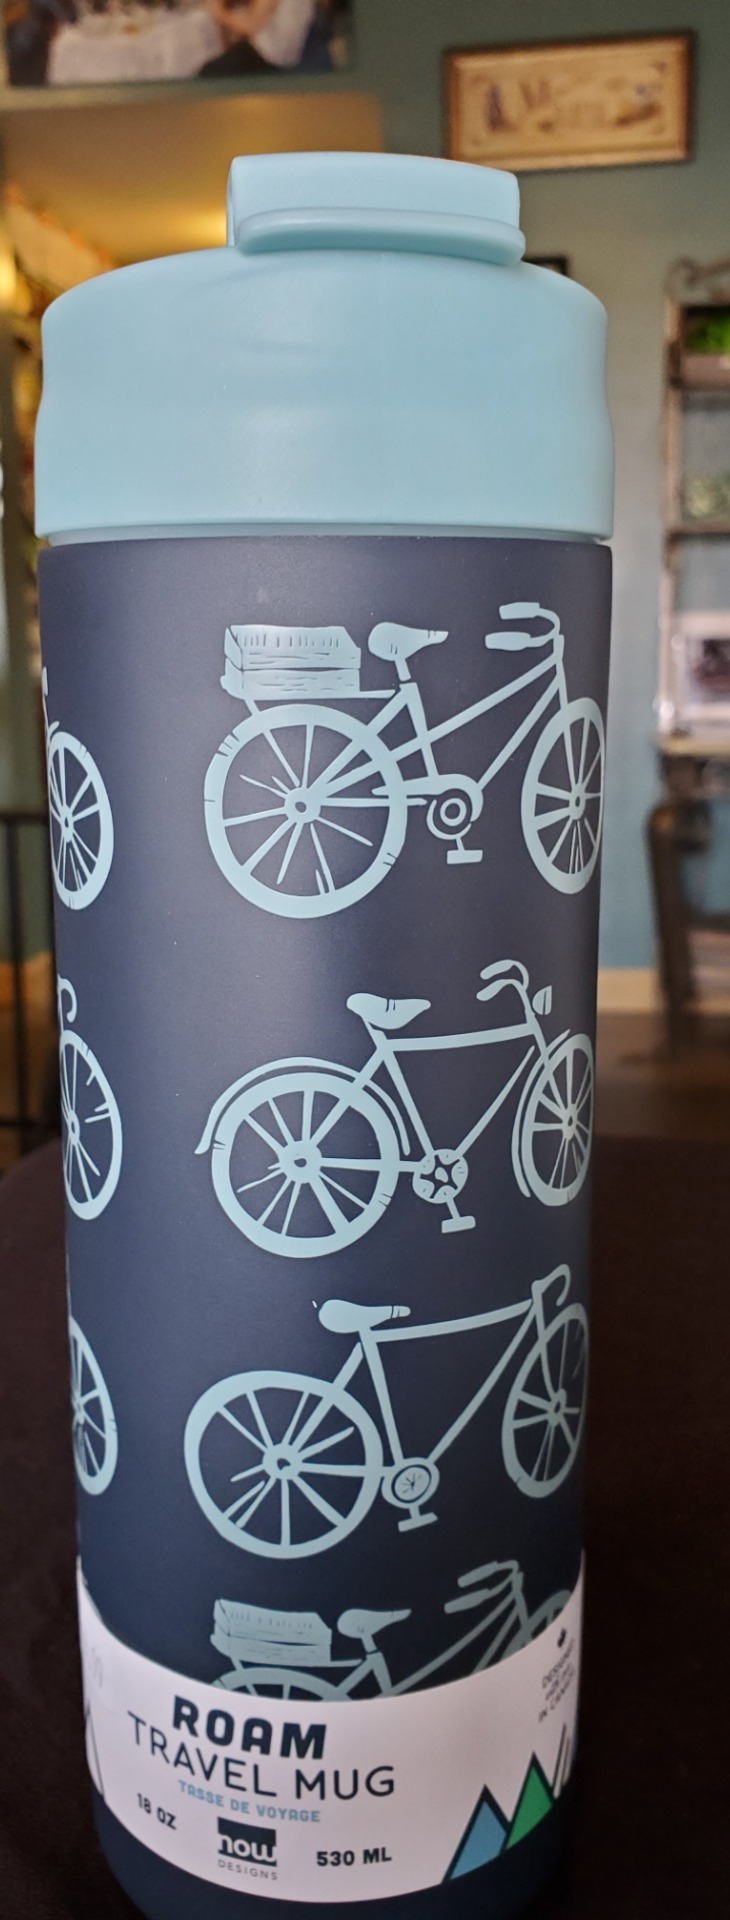 Roam travel mug Image